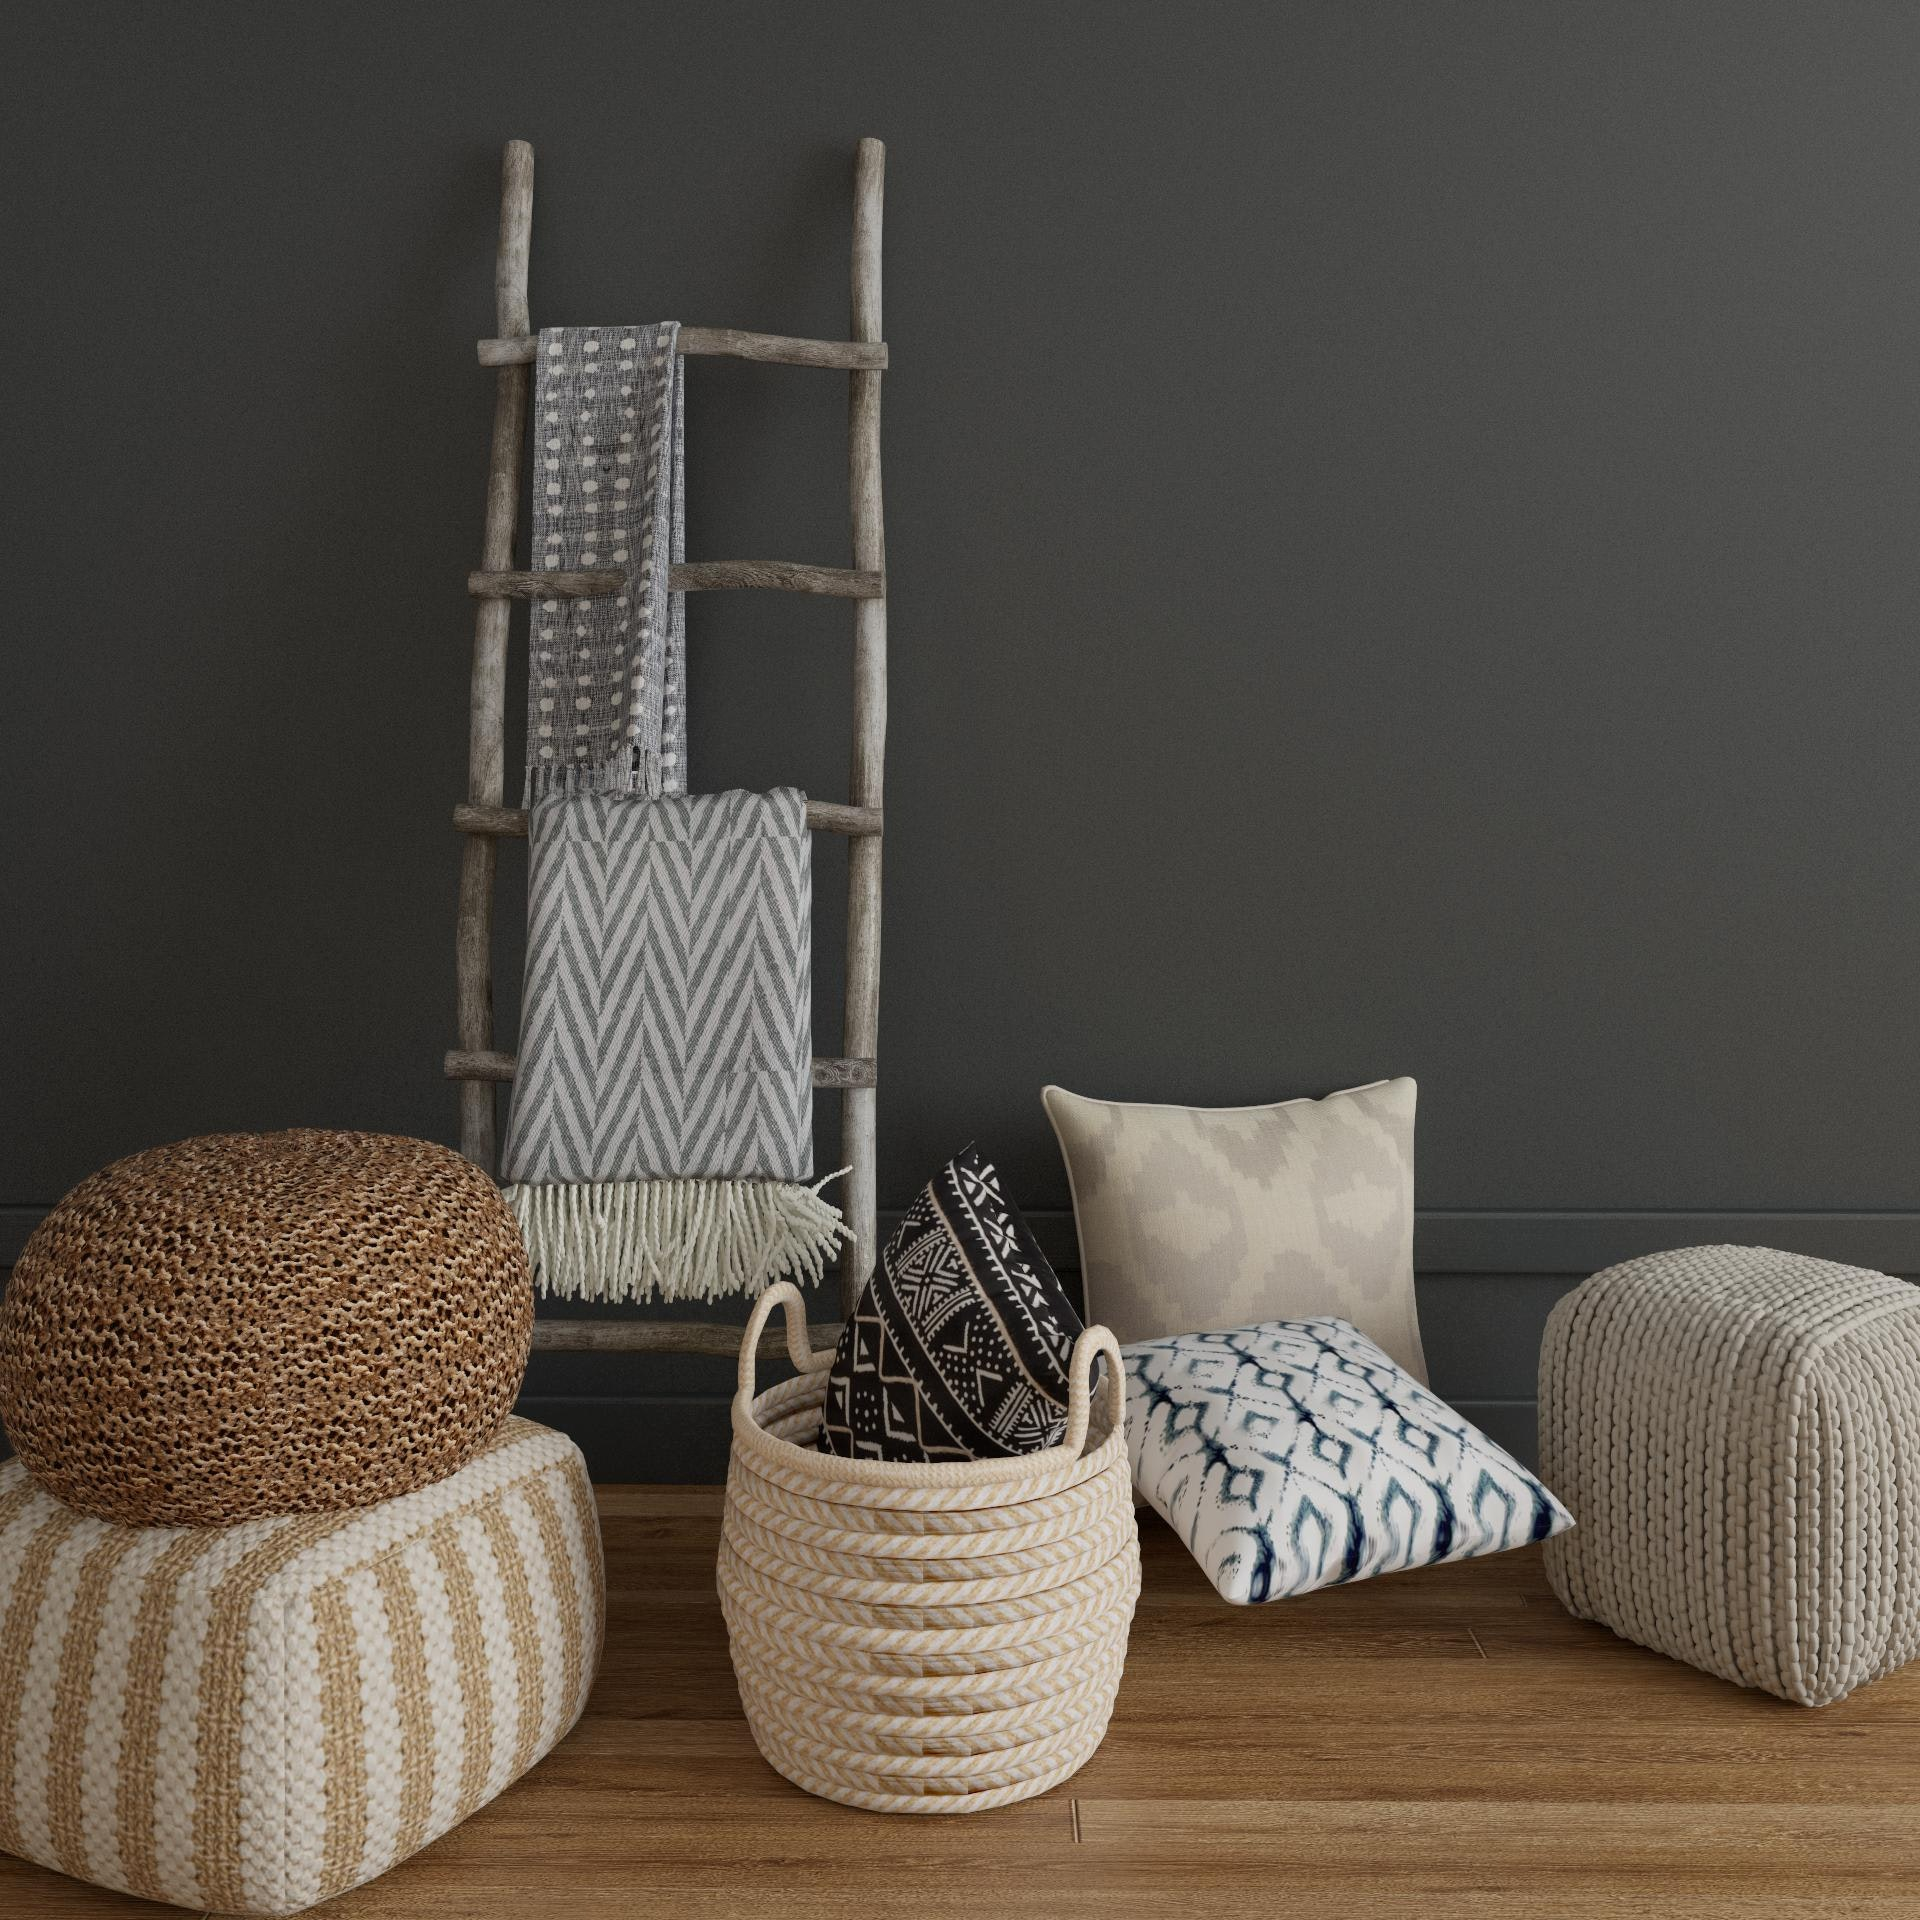 Blanket Ladder Design Ideas And Styles From Modsy Designers